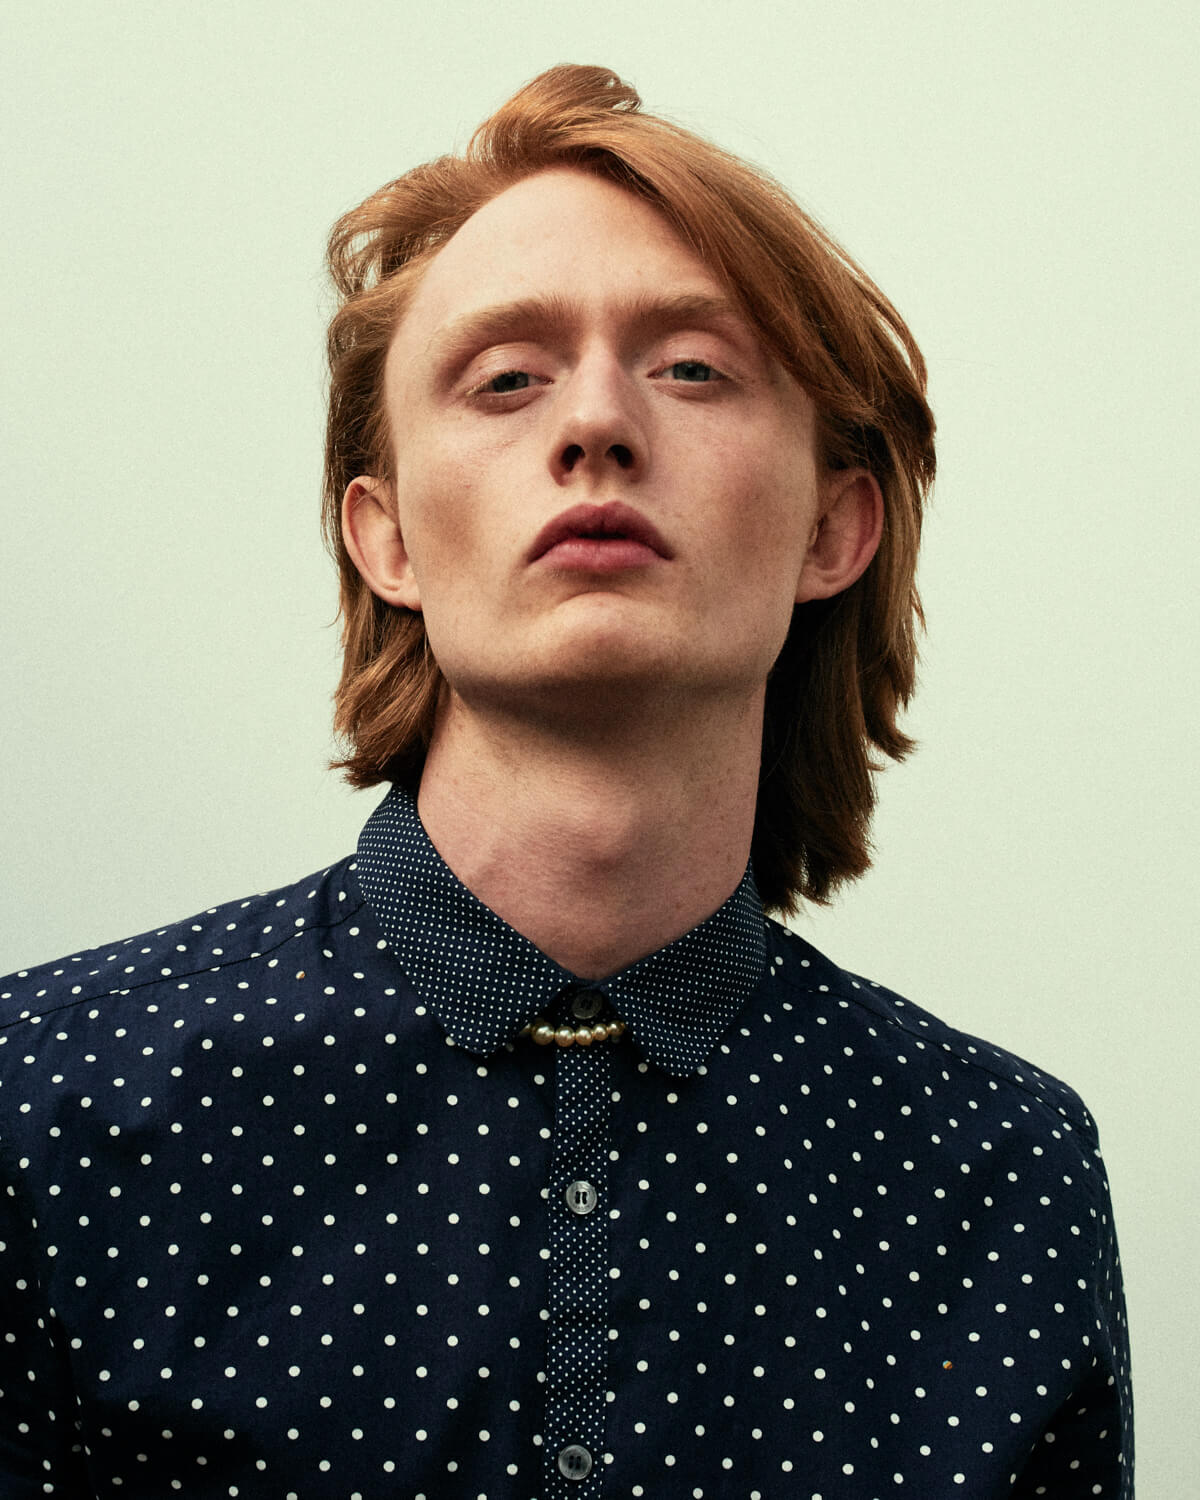 Lad, red hair, spotted shirt, looks to camera in studio by lifestyle photographer Tim Cole